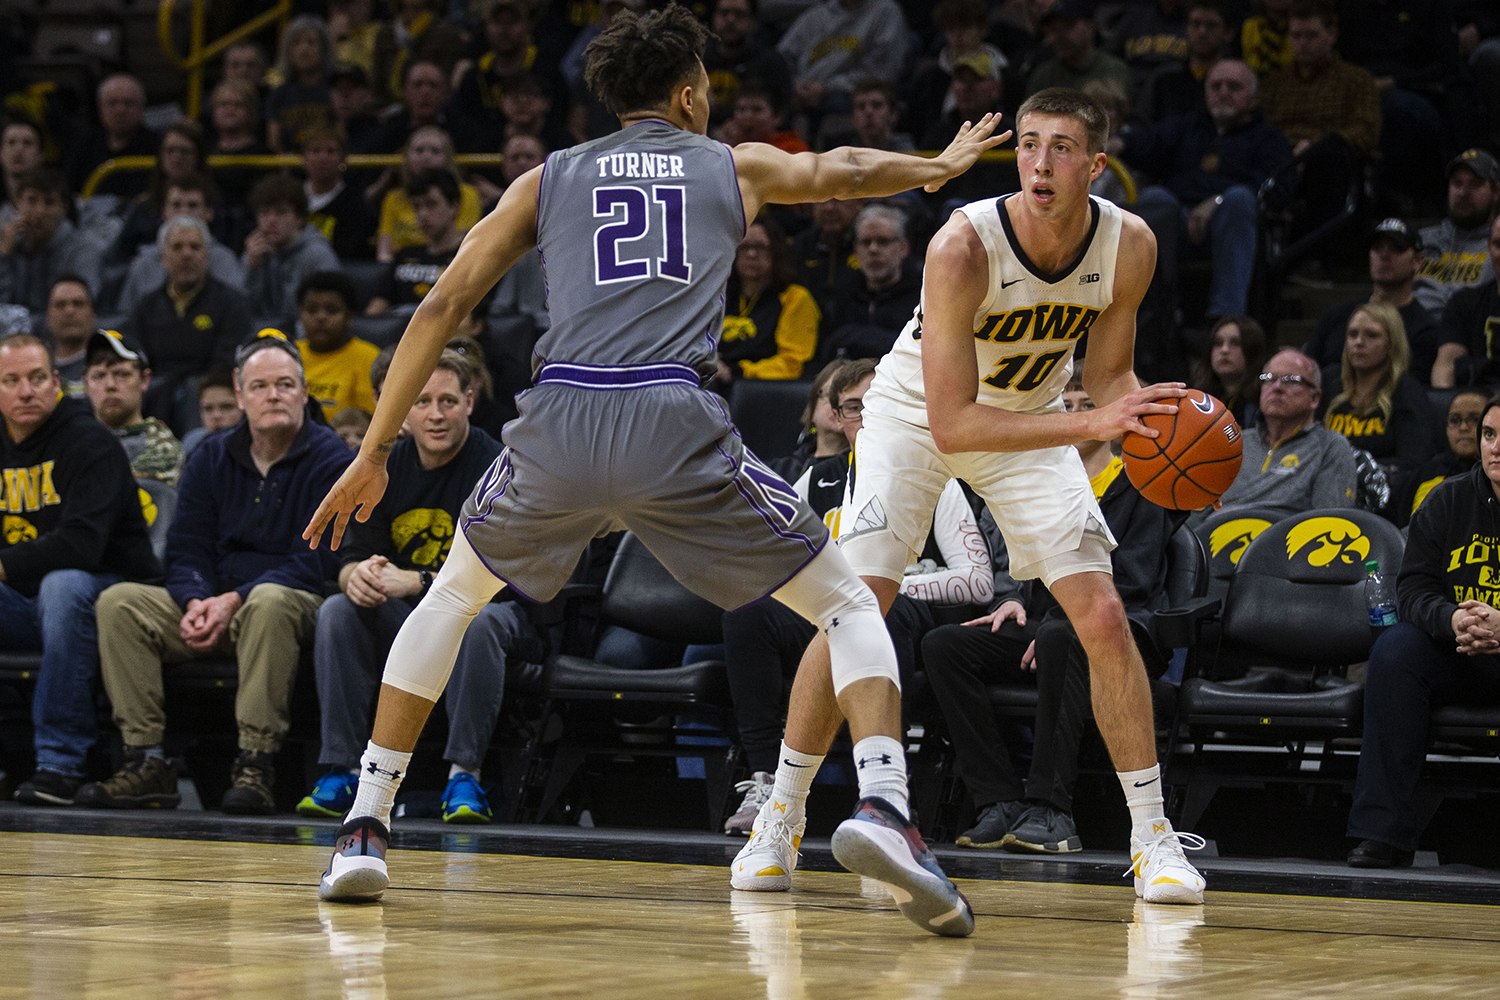 Iowa guard Joe Wieskamp looks to pass the ball during the Iowa/Northwestern men's basketball game at Carver-Hawkeye Arena on Sunday, February 10, 2019. The Hawkeyes defeated the Wildcats, 80-79. (Lily Smith/The Daily Iowan)